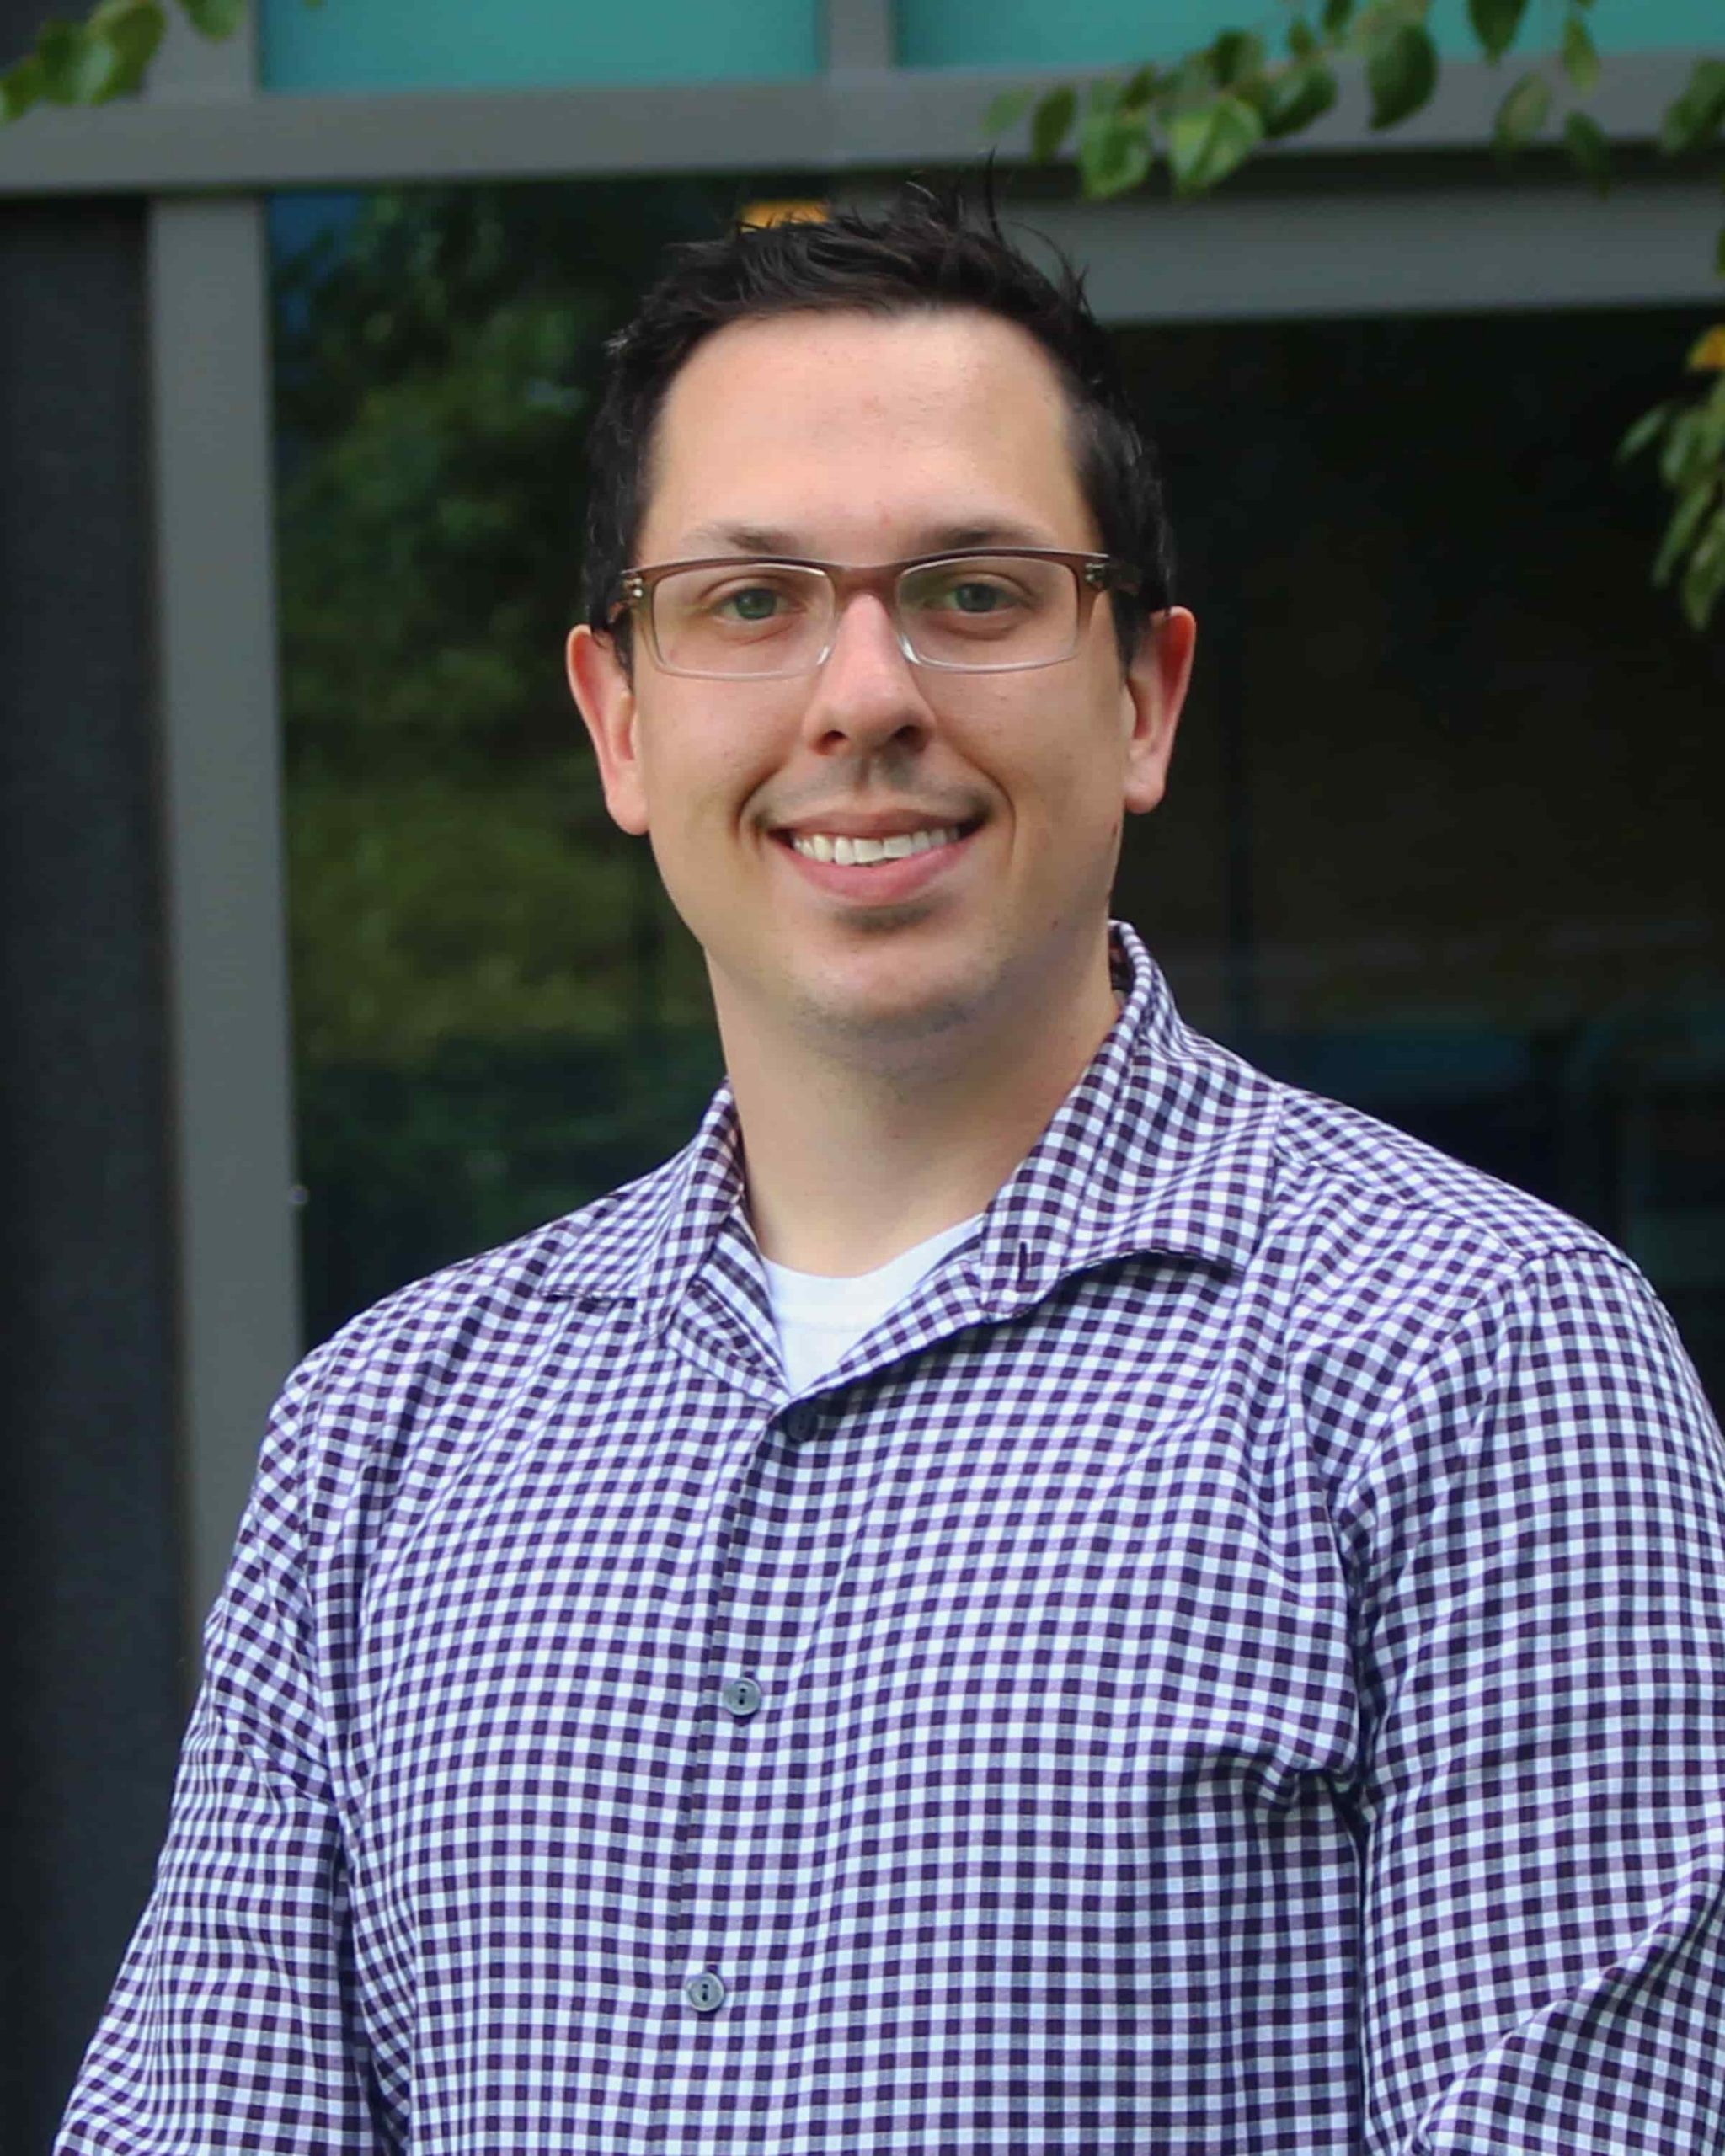 A smiling man with short dark hair wearing glasses and a blue plaid buttoned shirt.